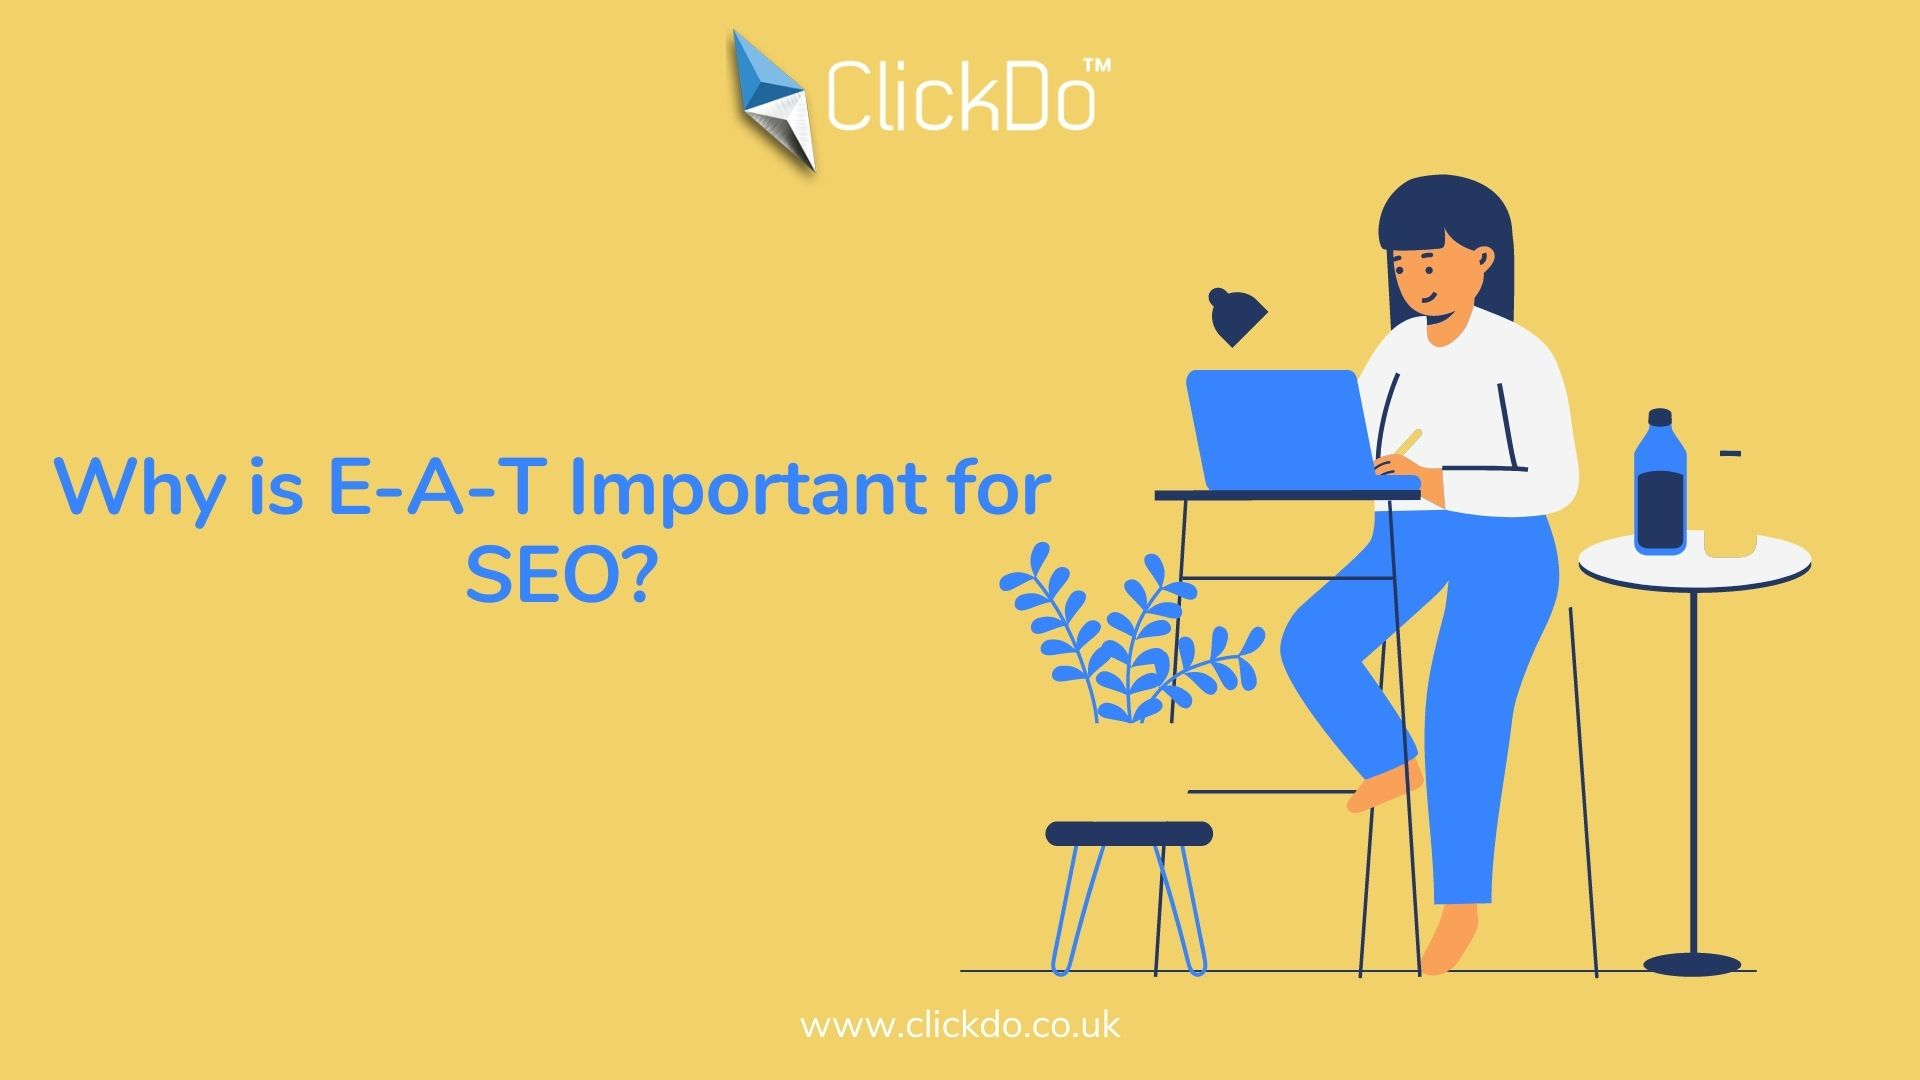 Why is E-A-T Important for SEO